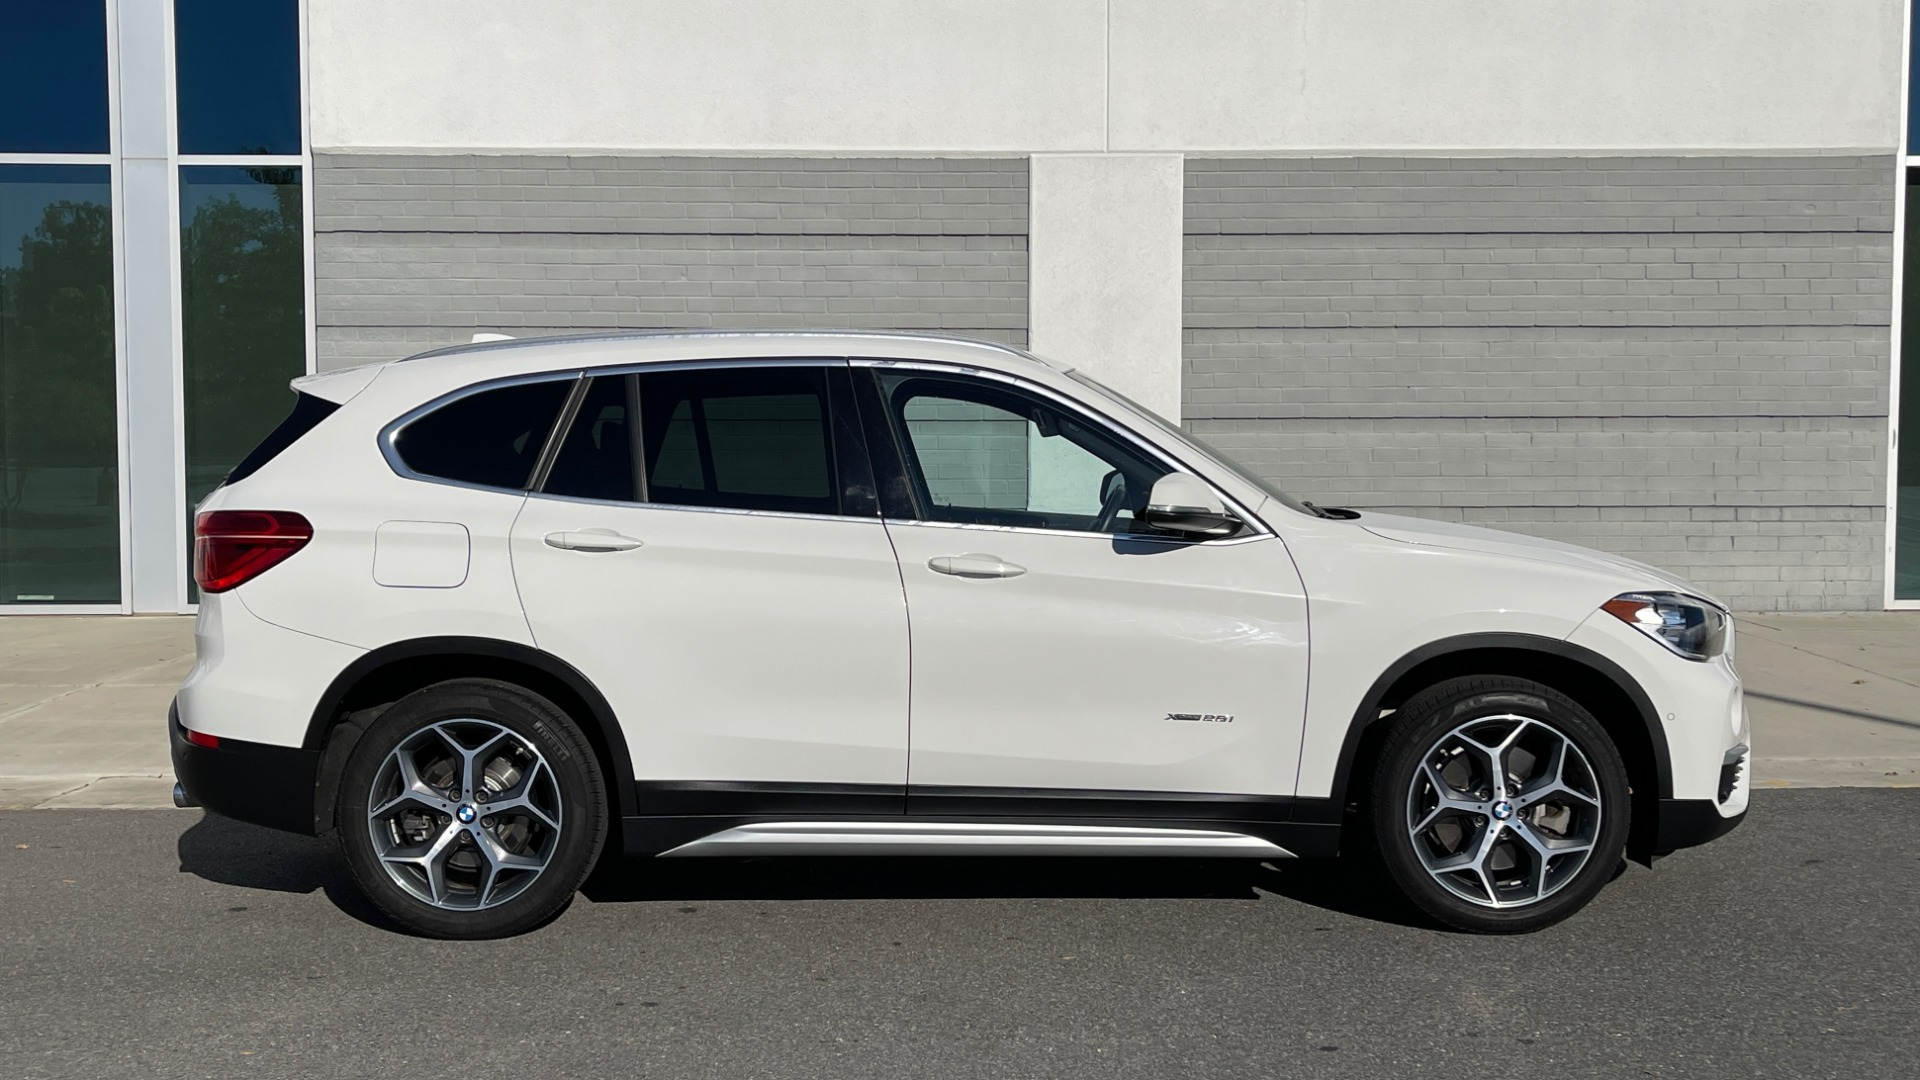 Used 2018 BMW X1 XDRIVE28I / CONV PKG / PANO-ROOF / PARK ASST / REARVIEW for sale $31,995 at Formula Imports in Charlotte NC 28227 6